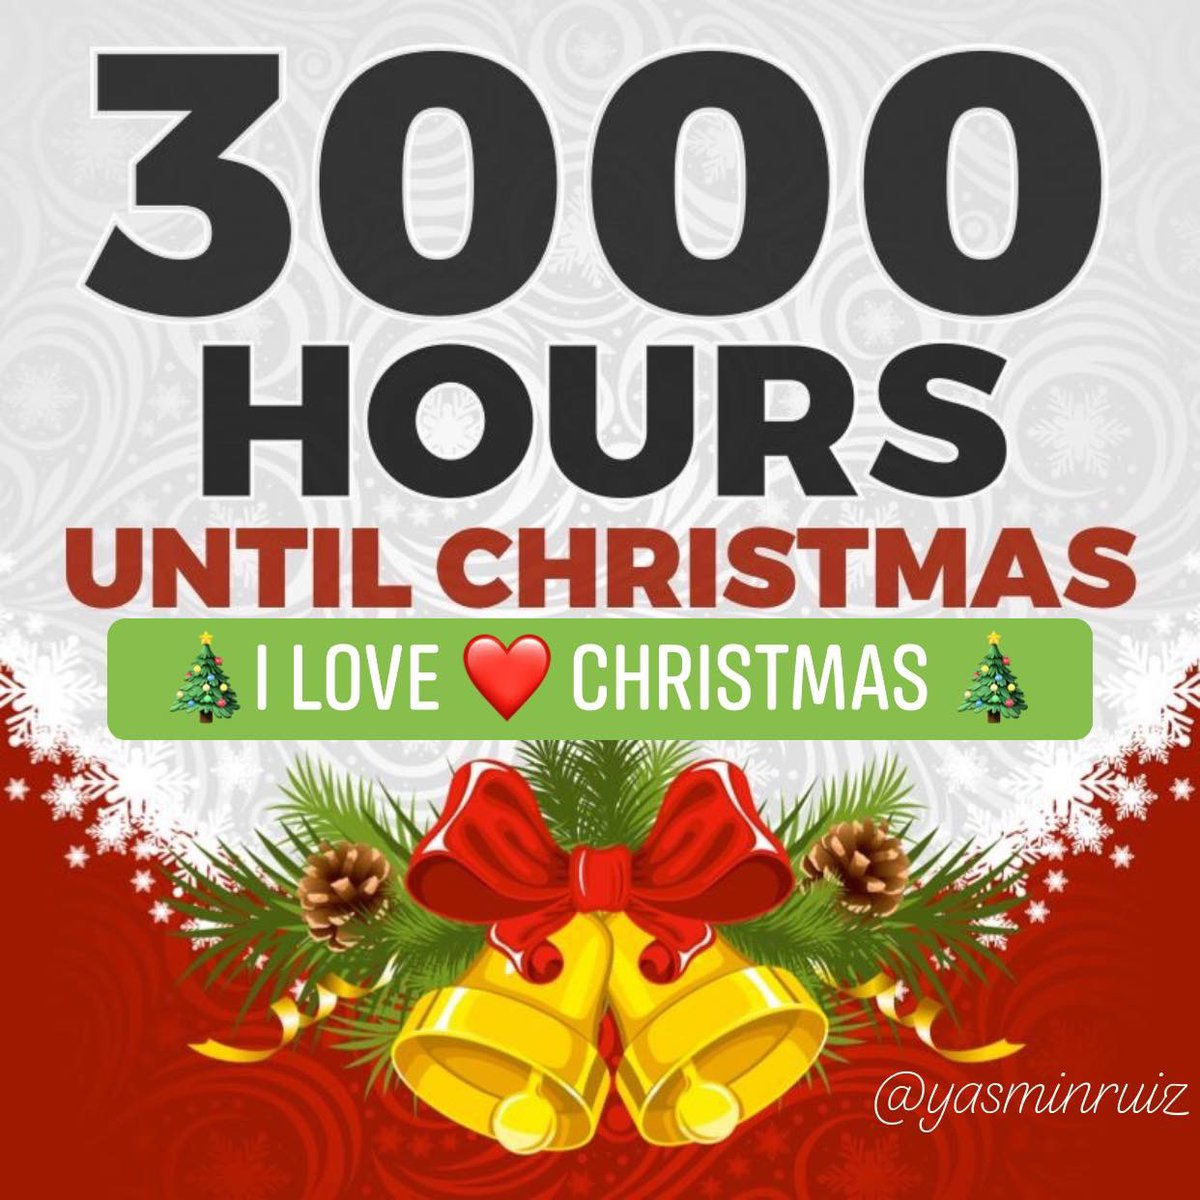 How Many Hours Until Christmas.3000 Hours Until Christmas Count Down To Christmas